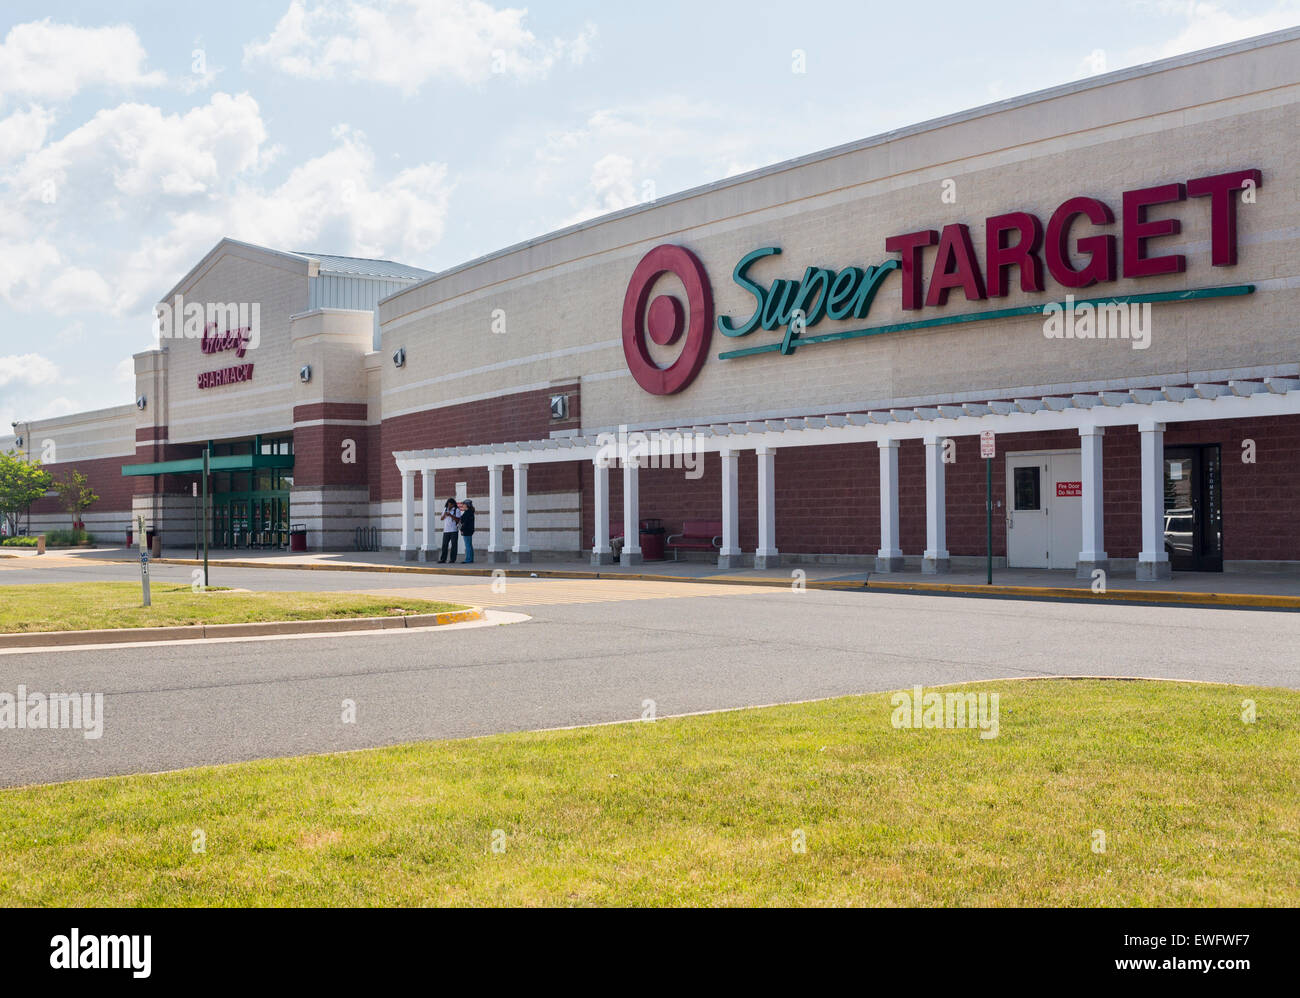 Entrance To Large Super Target Food Supermarket In Gainesville Virginia USA